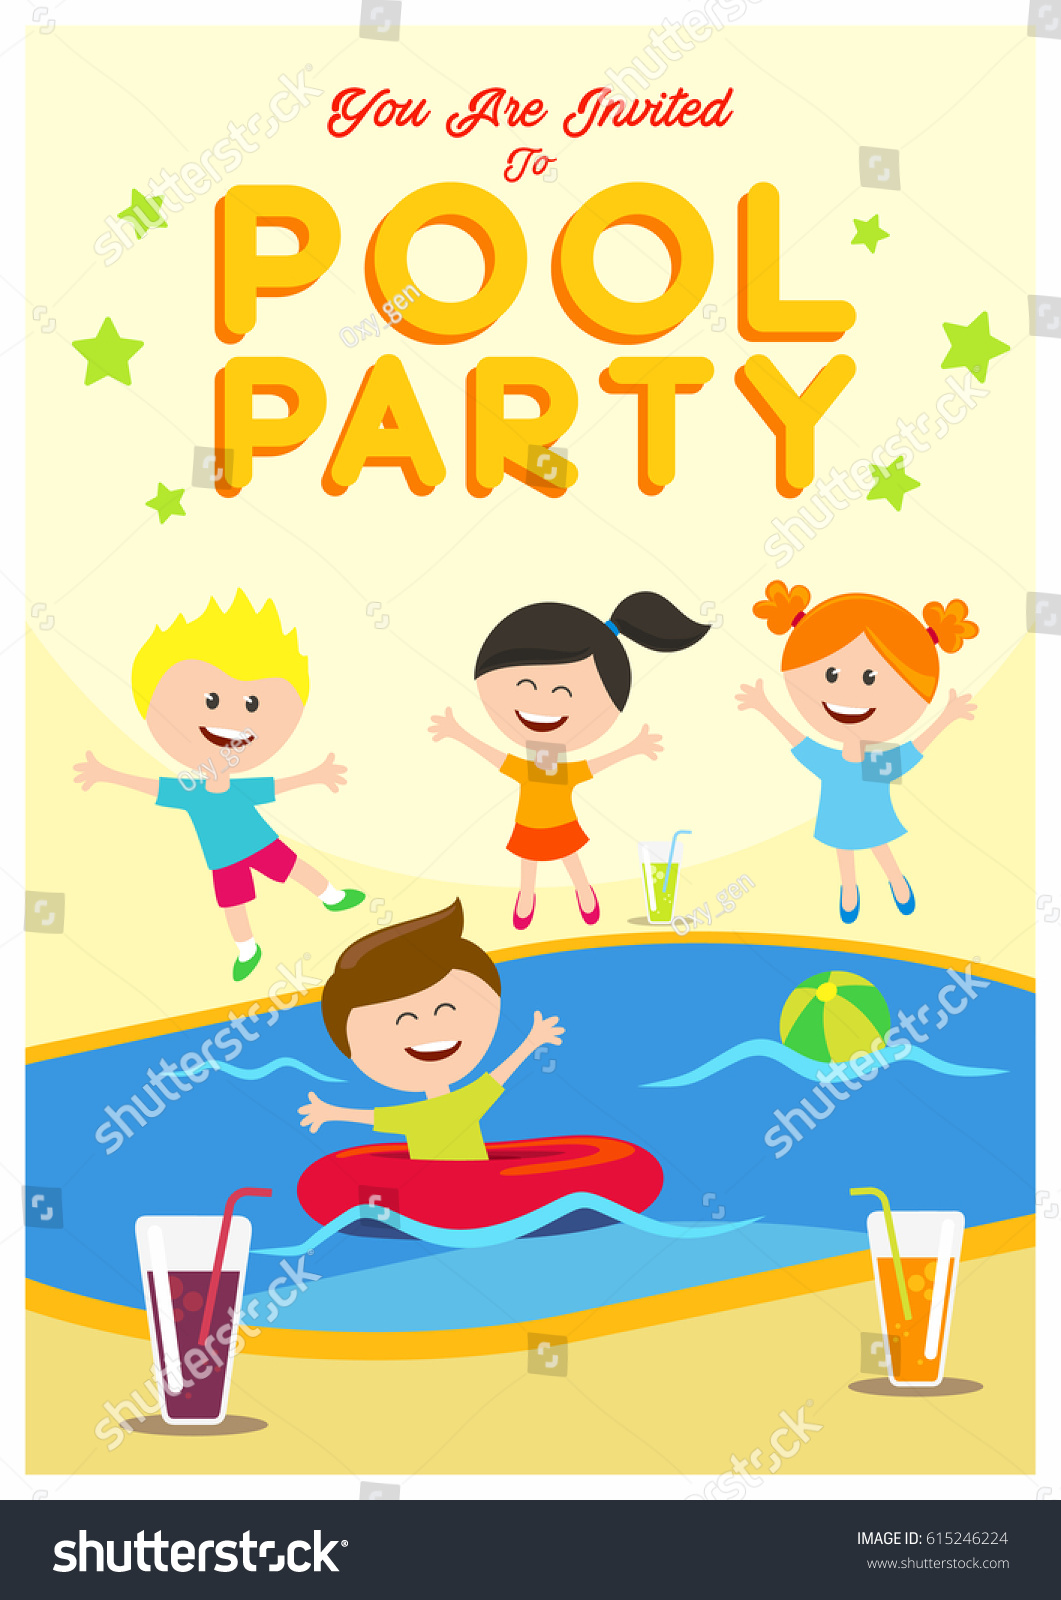 Pool Party Invitation Kids Summertime Party Stock Vector 615246224 ...